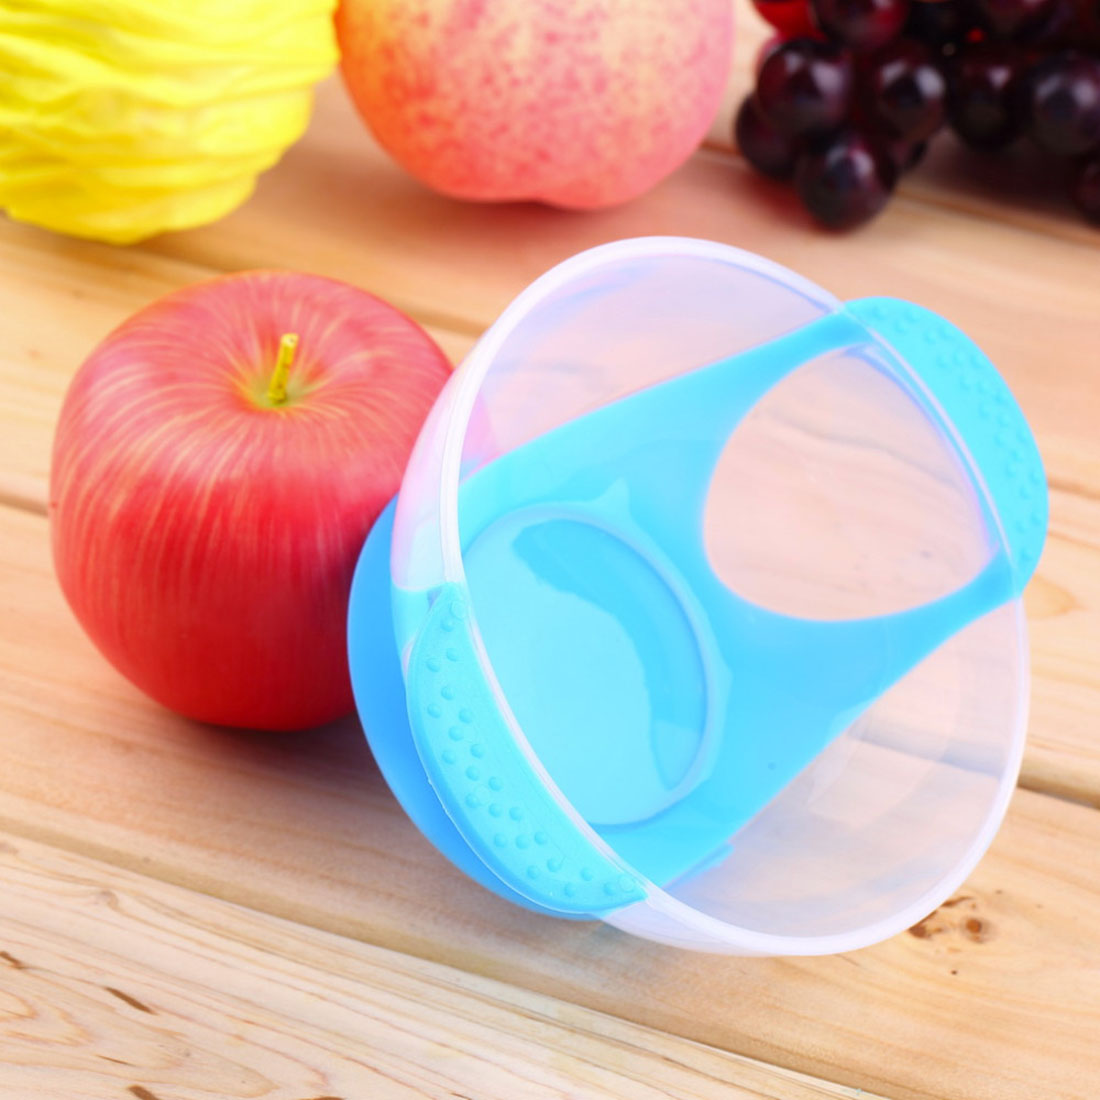 Baby Infants feeding Bowl With Sucker and Temperature Sensing Spoon Suction Cup Bowl Slip resistant Tableware 2016 New